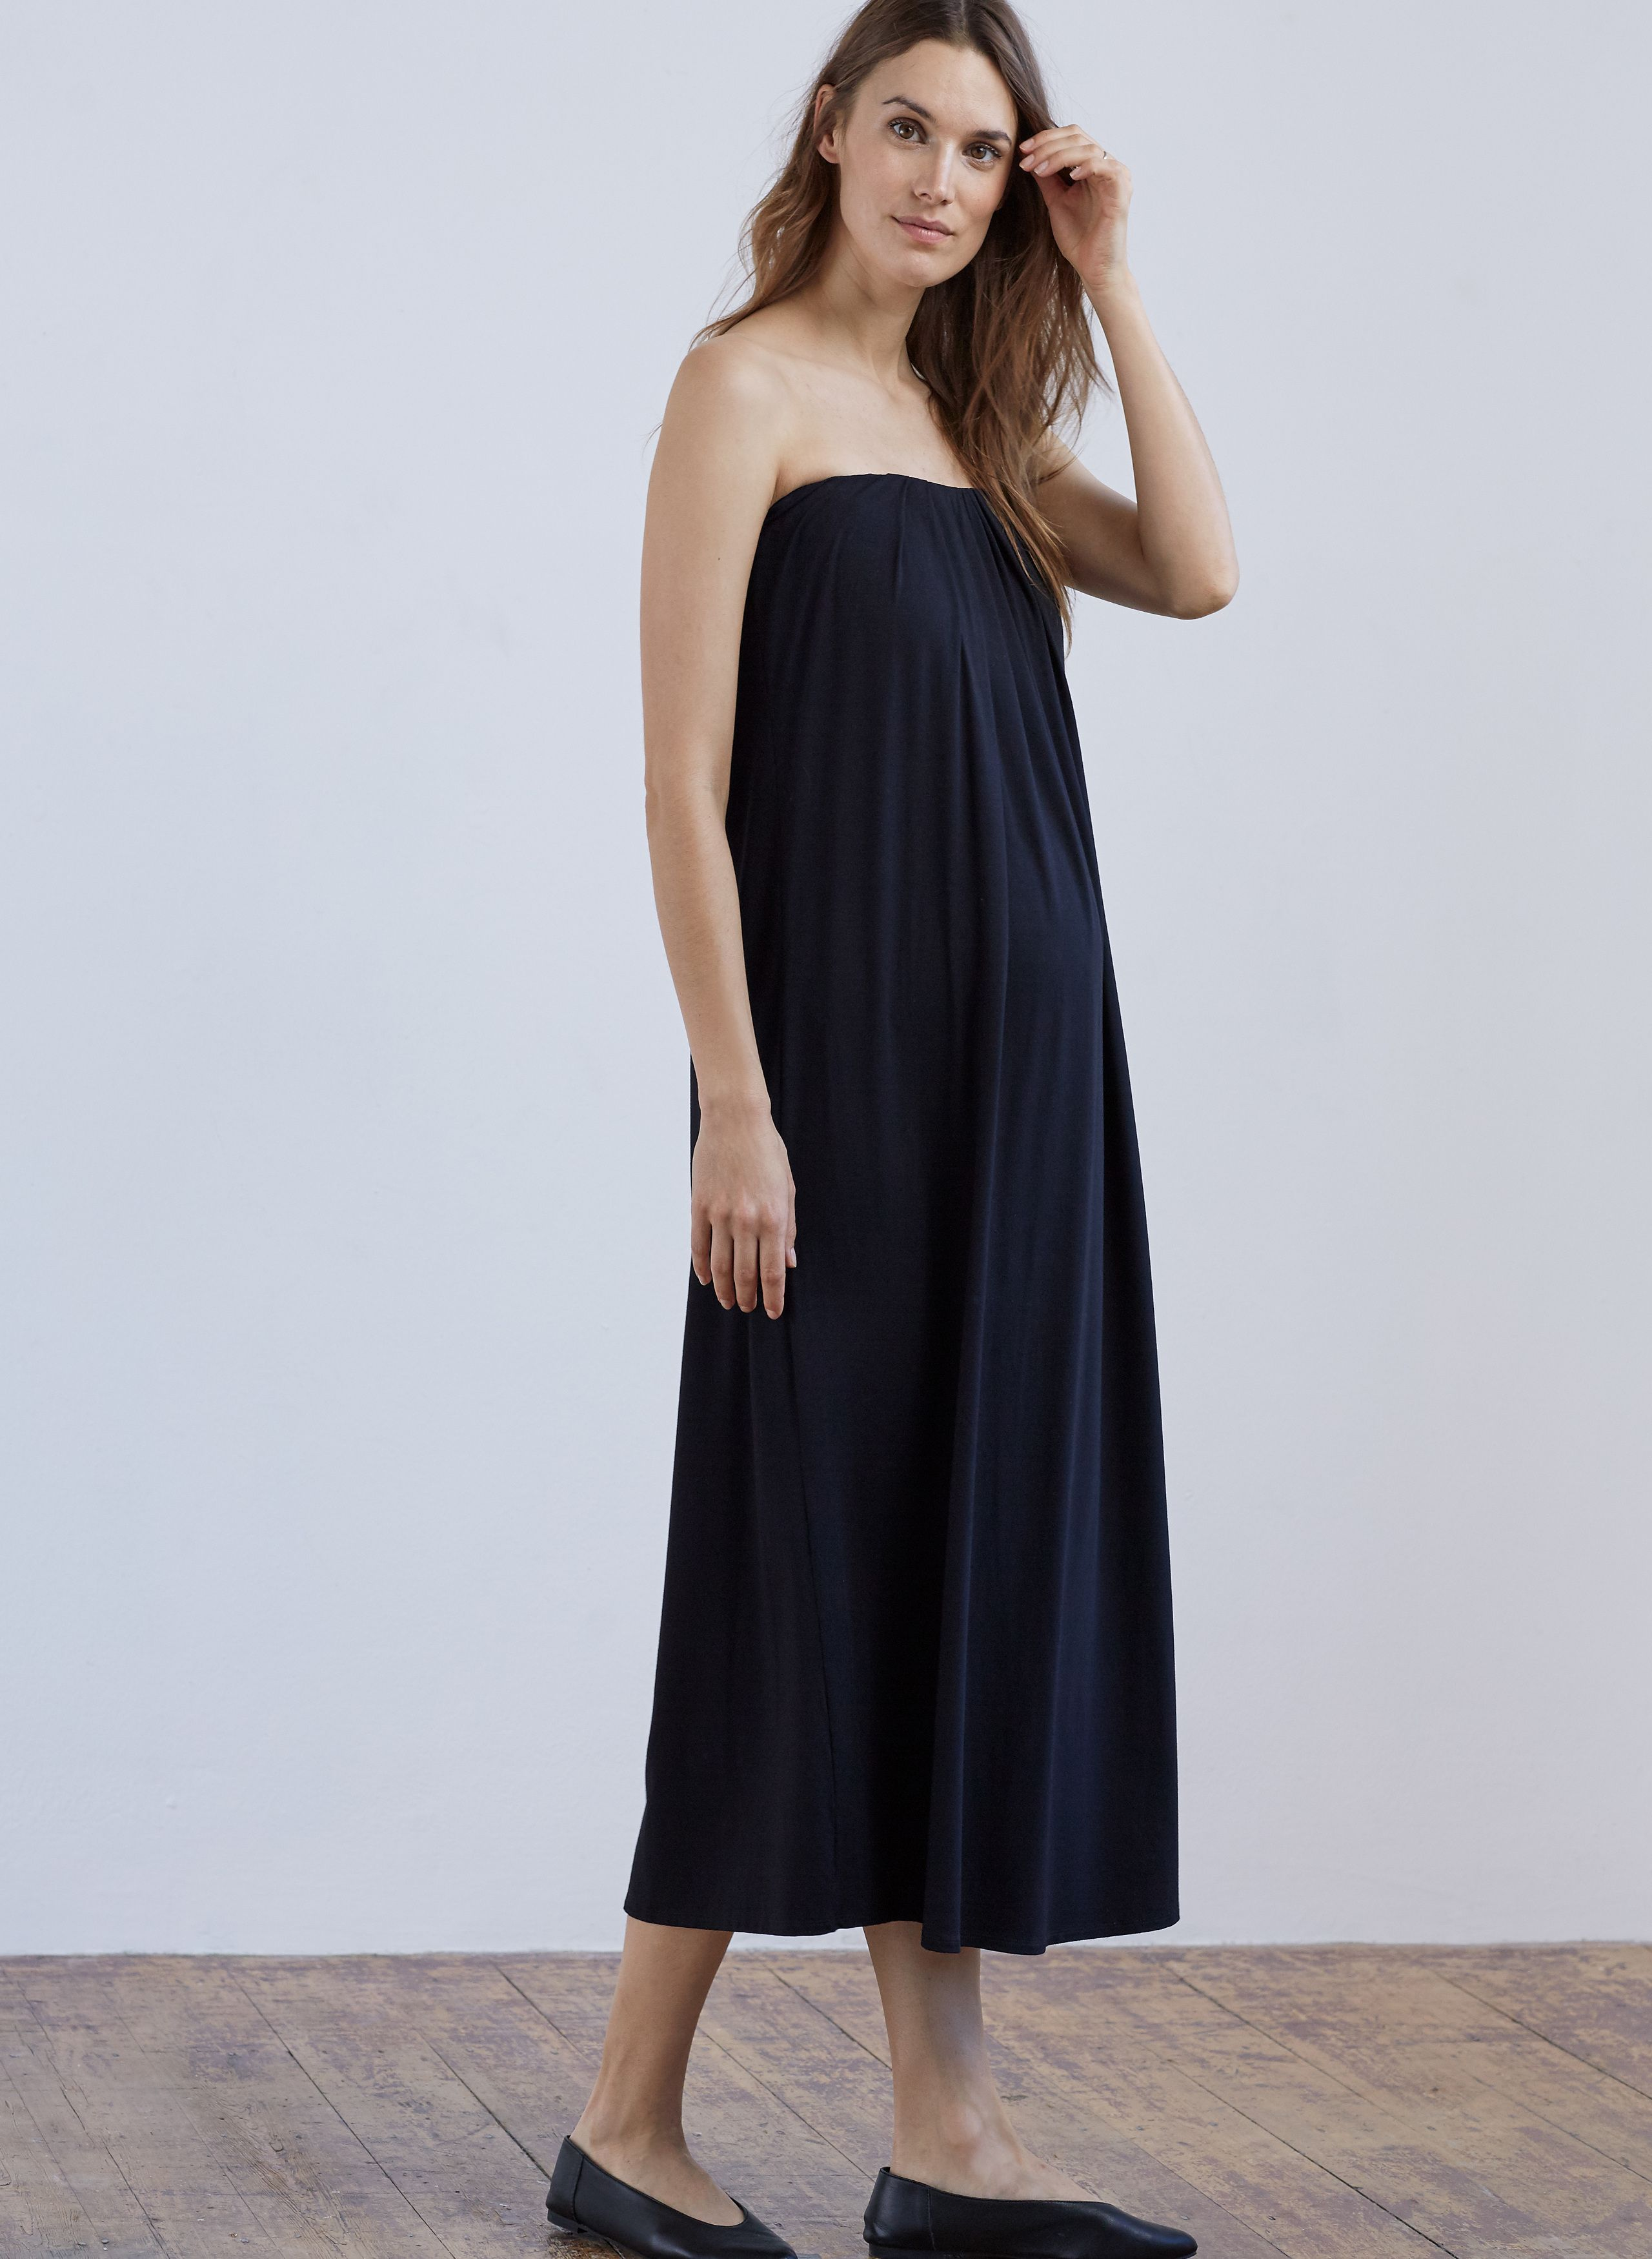 a03c6d4c43d This strapless silhouette will fit and flatter you during all 9 months and  beyond. This is a real throw-on-and-go piece that we guarantee you ll be  wearing ...